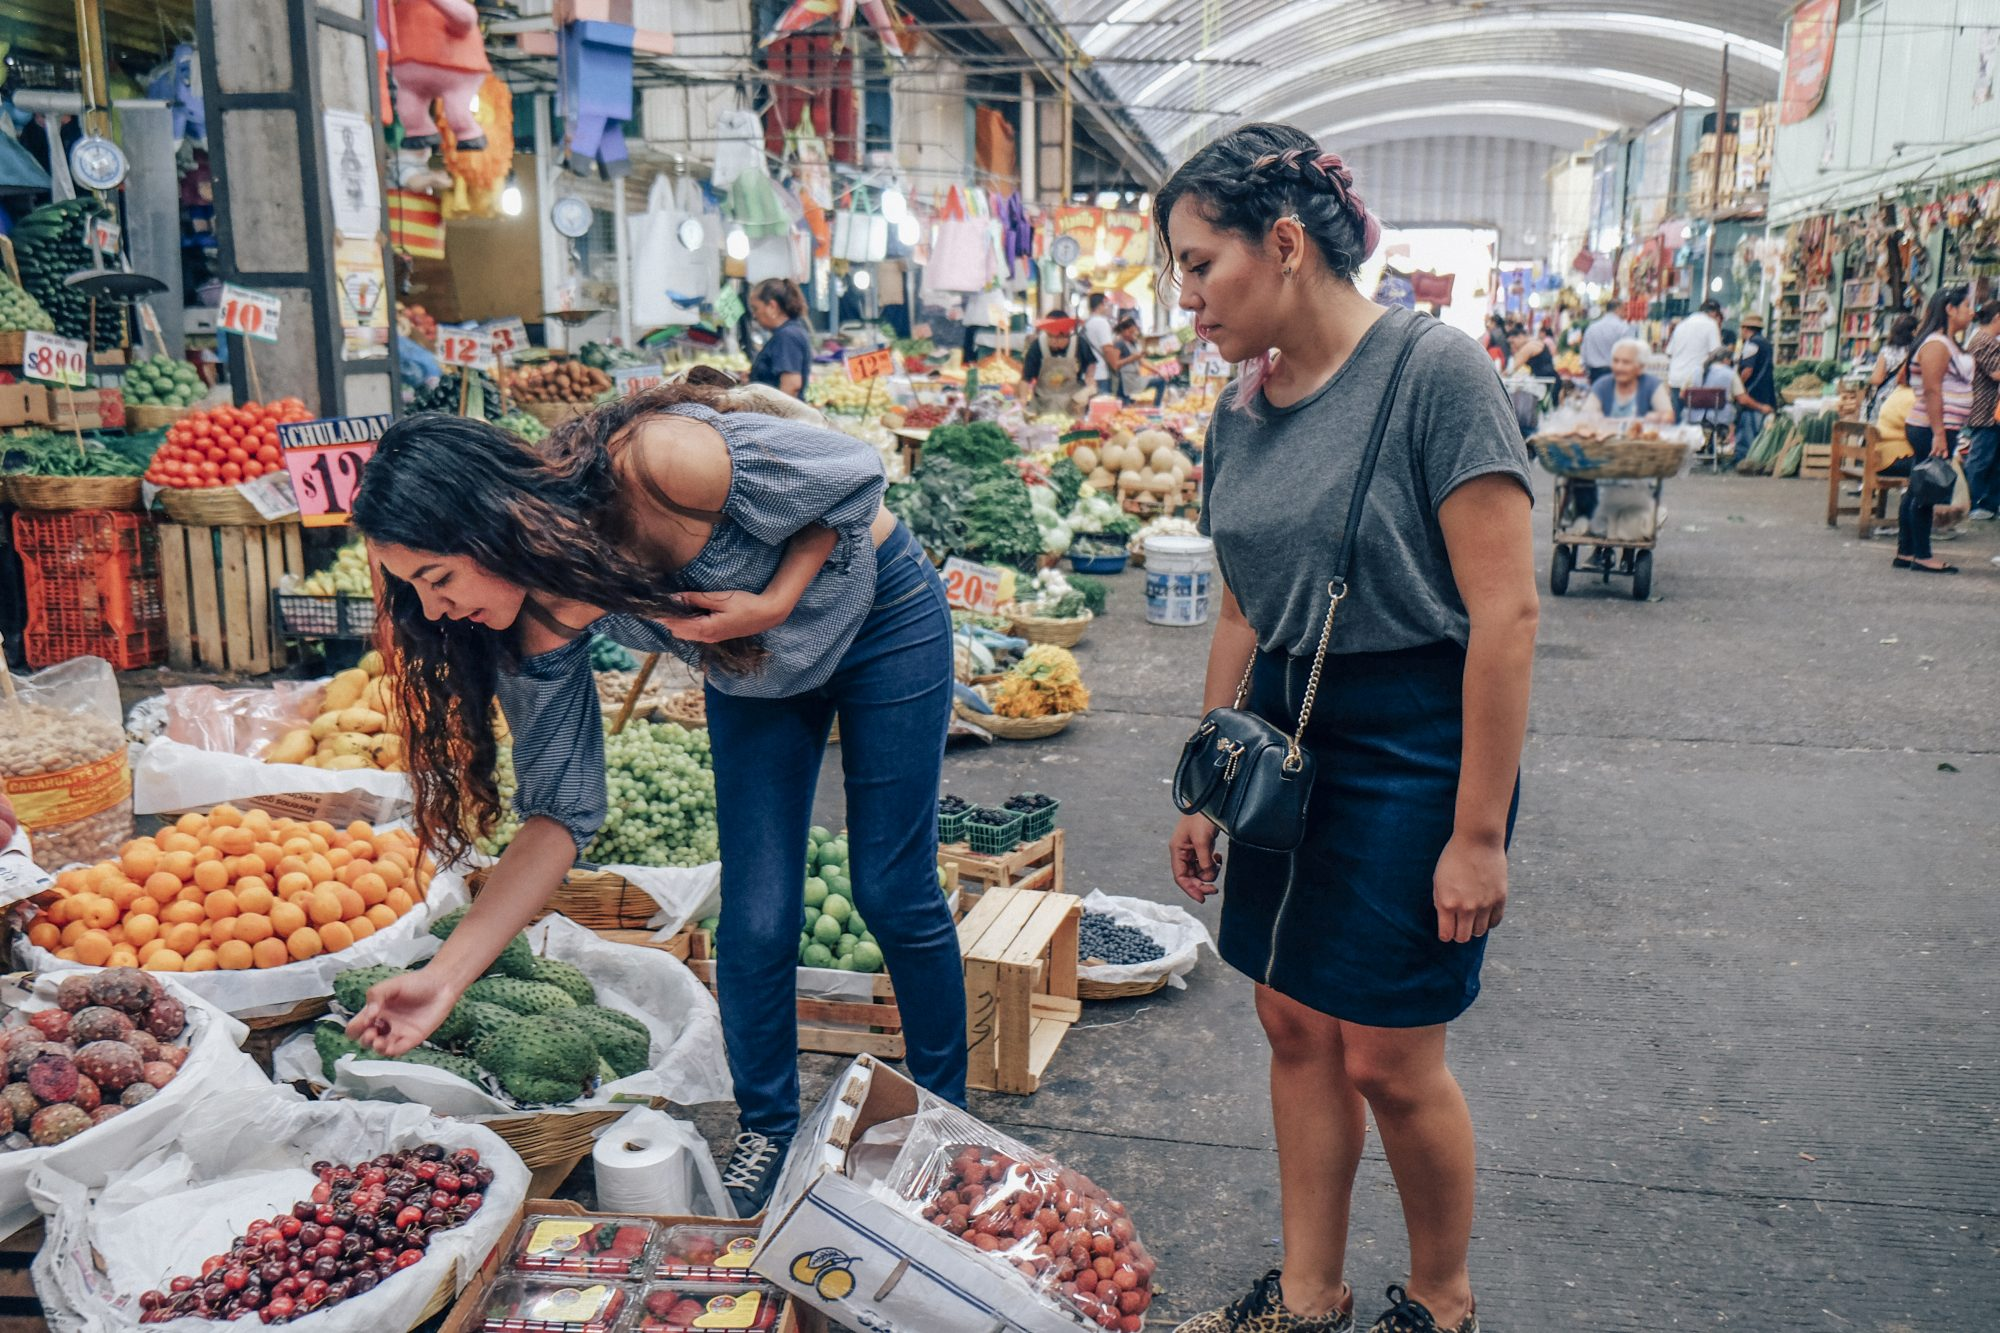 women shopping for food in a Mexico City market